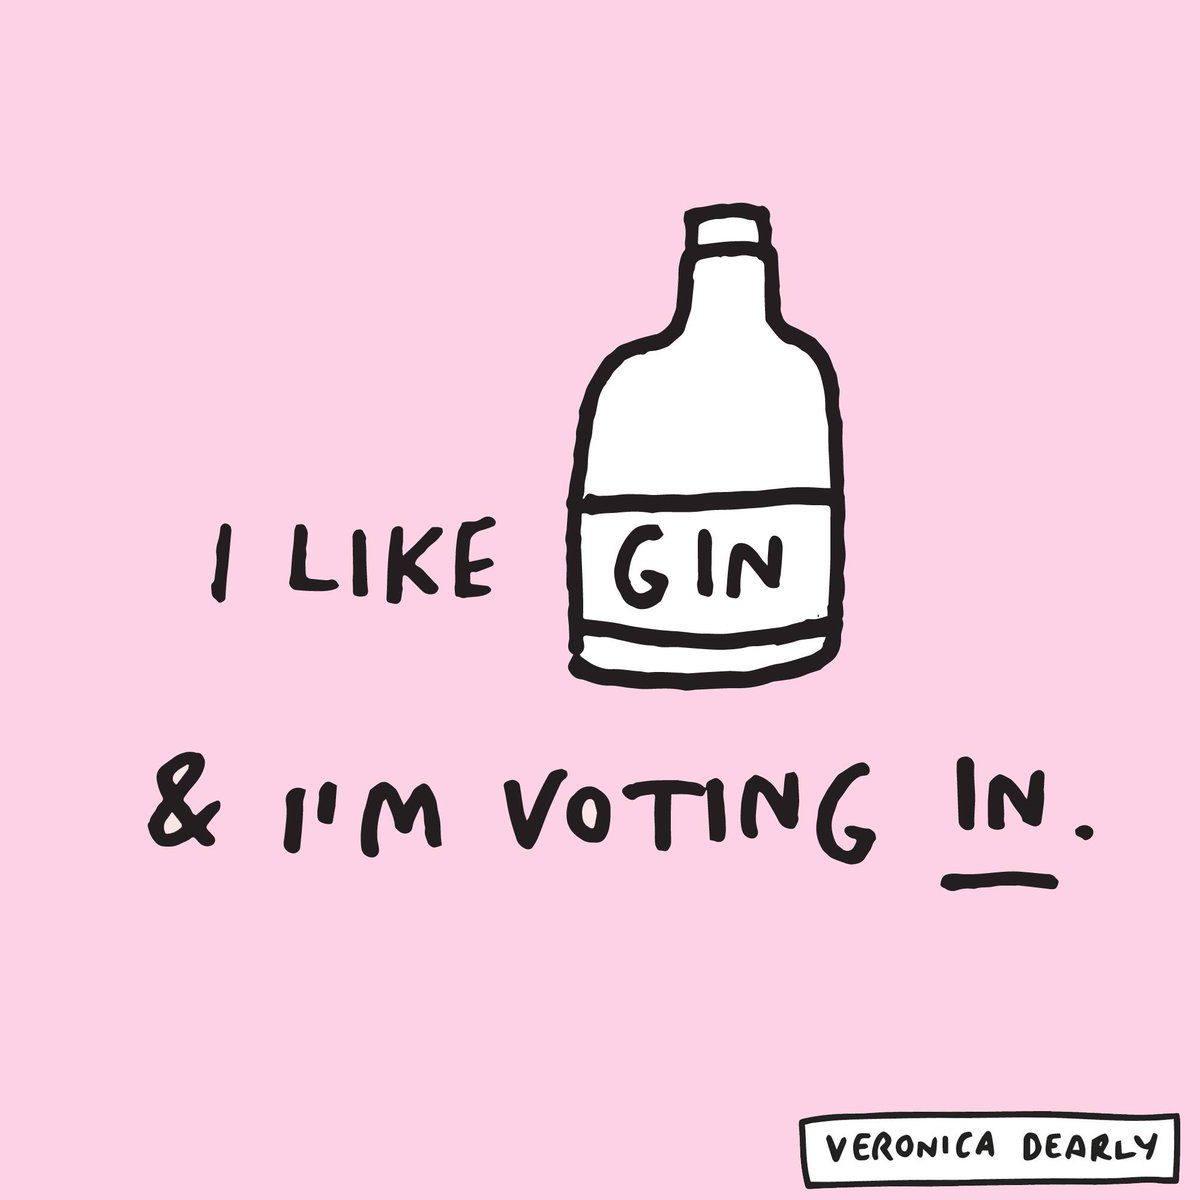 Couldn't have put it better myself, @VeronicaDearly  #iVoted  (Great find, @NatWallers) https://t.co/zIq3y0ANUL